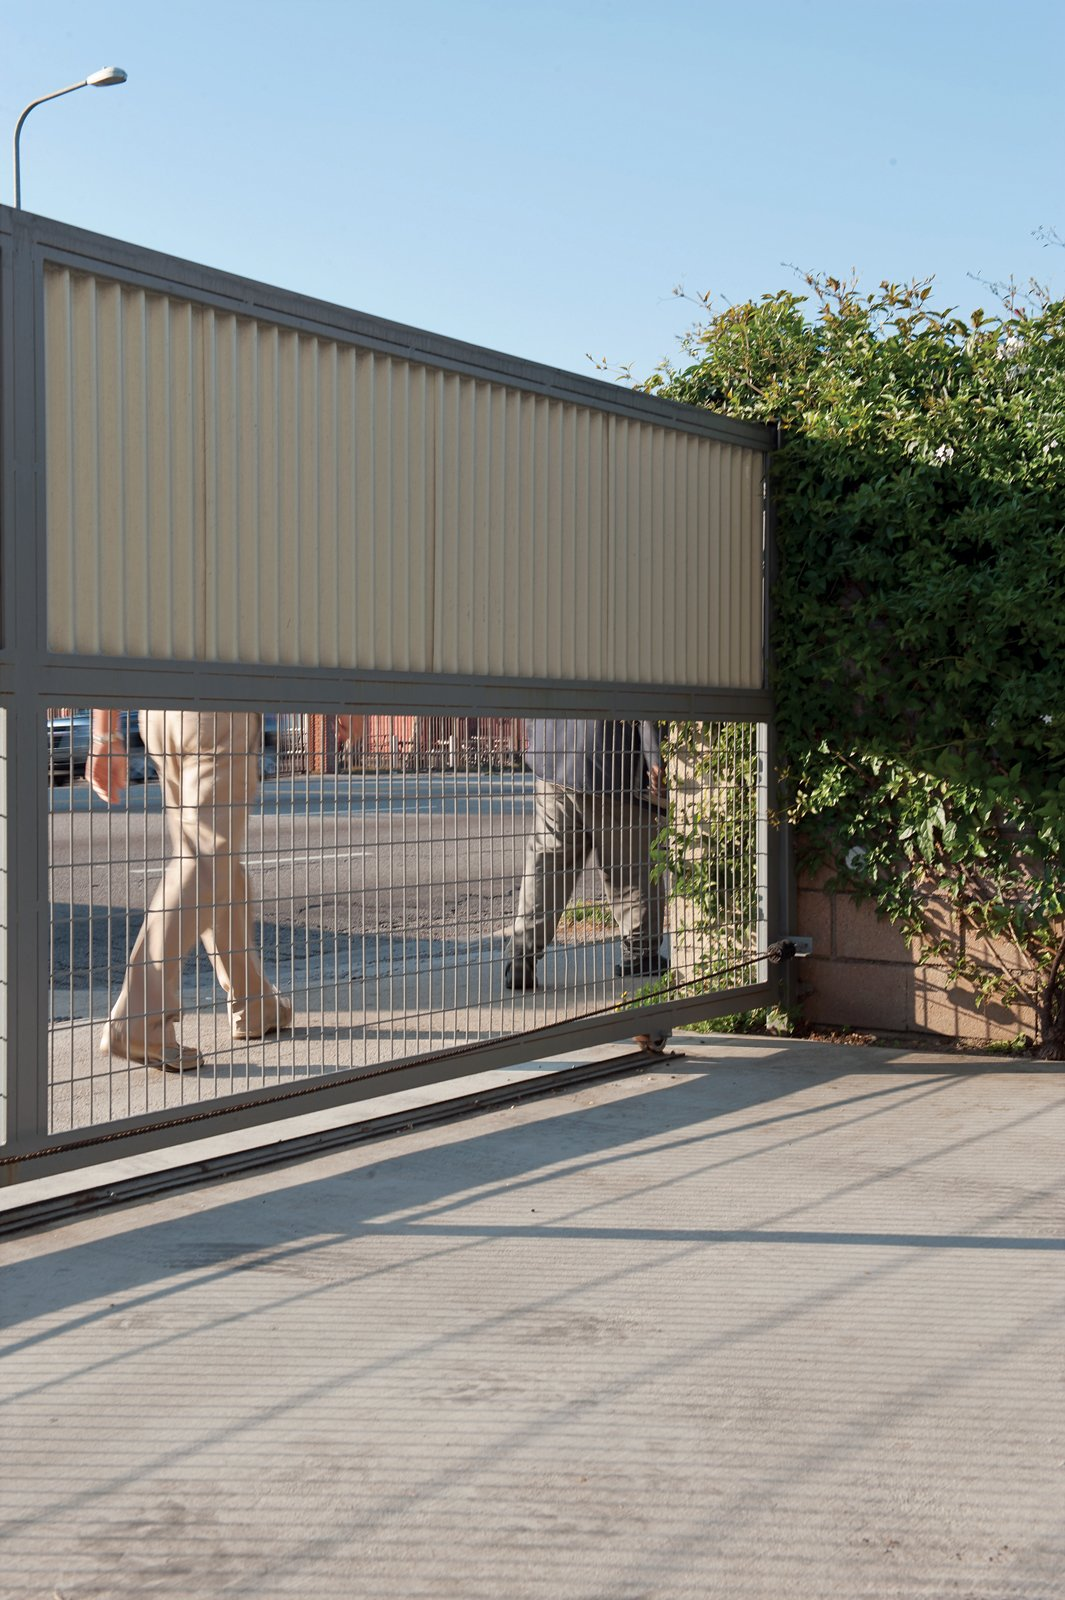 Playing Defense  Cooper was faced with a conundrum when designing her property gate. She didn't want passersby to be able to see in, but neither did she want a totally solid barrier keeping street life out. Using spare sheet metal, she fashioned a gate that's solid on top and porous steel wire on the bottom. With a tube steel structure for support and a DoorKing 9100 motor to open and close the heavy fence, she was set.   doorking.com  Photo 11 of 13 in 131-Day House